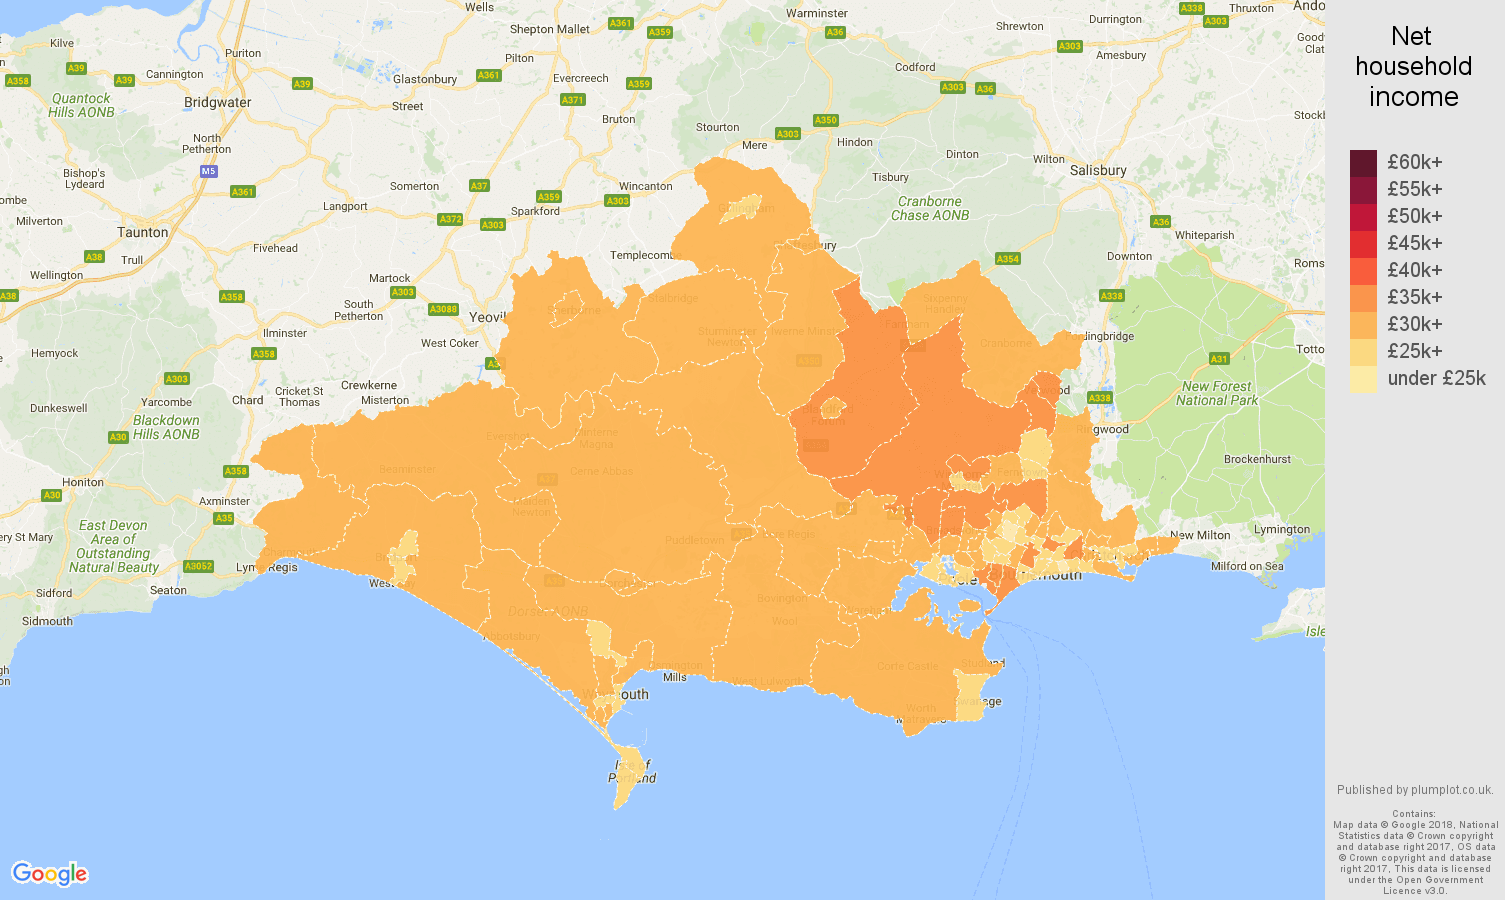 Dorset net household income map